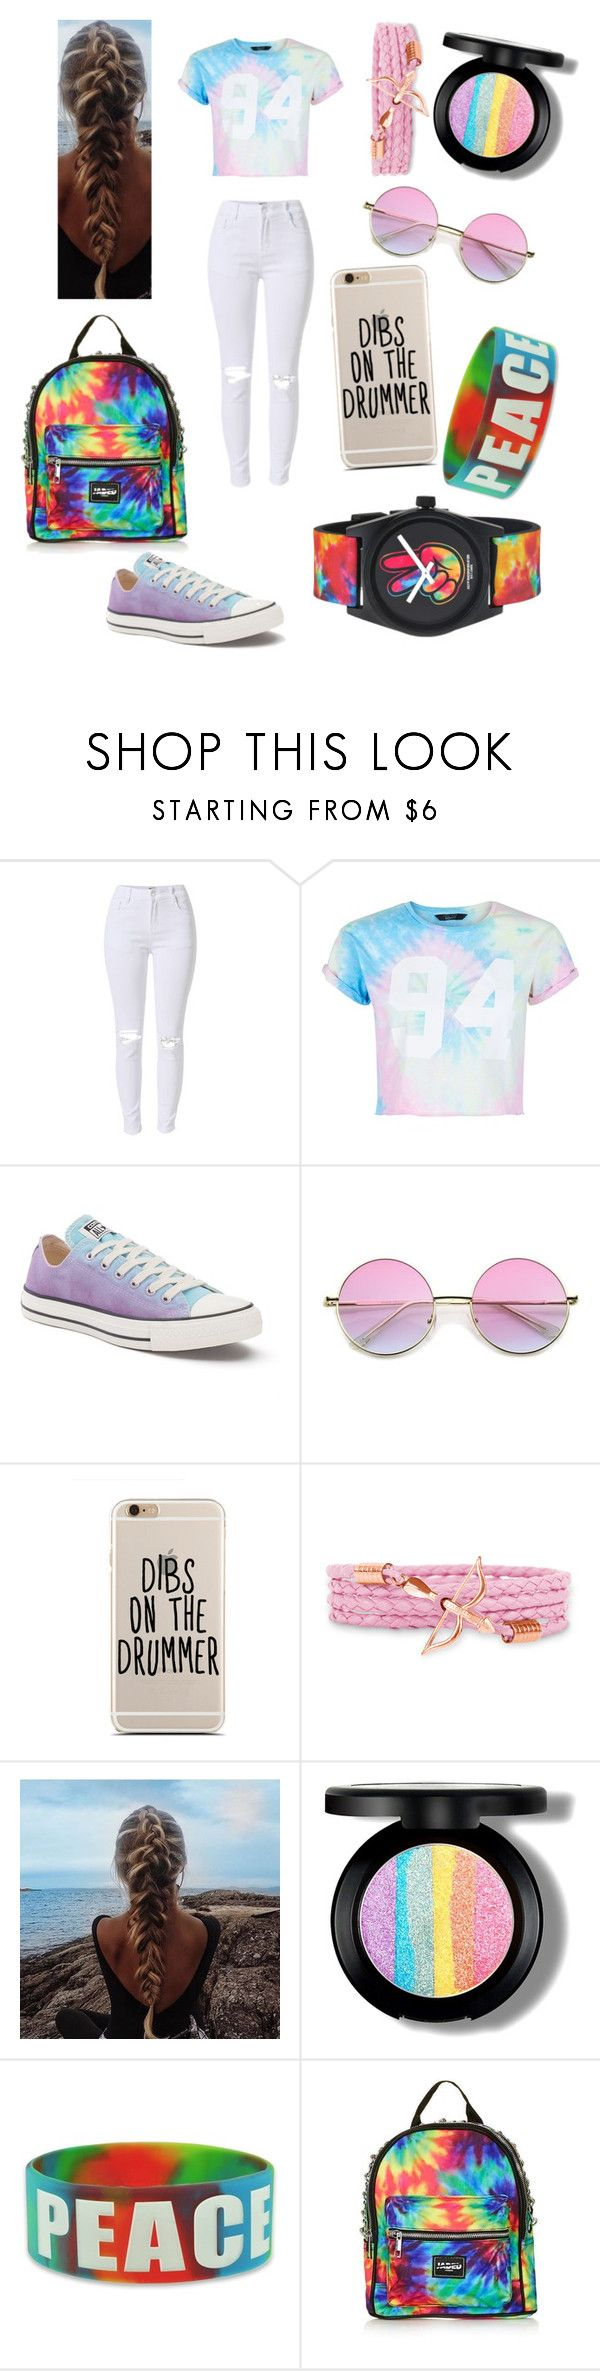 """""""Ashton Irwin 5sos concert outfit"""" by that-fangirl ❤ liked on Polyvore featuring New Look, Converse, Topshop and Neff"""